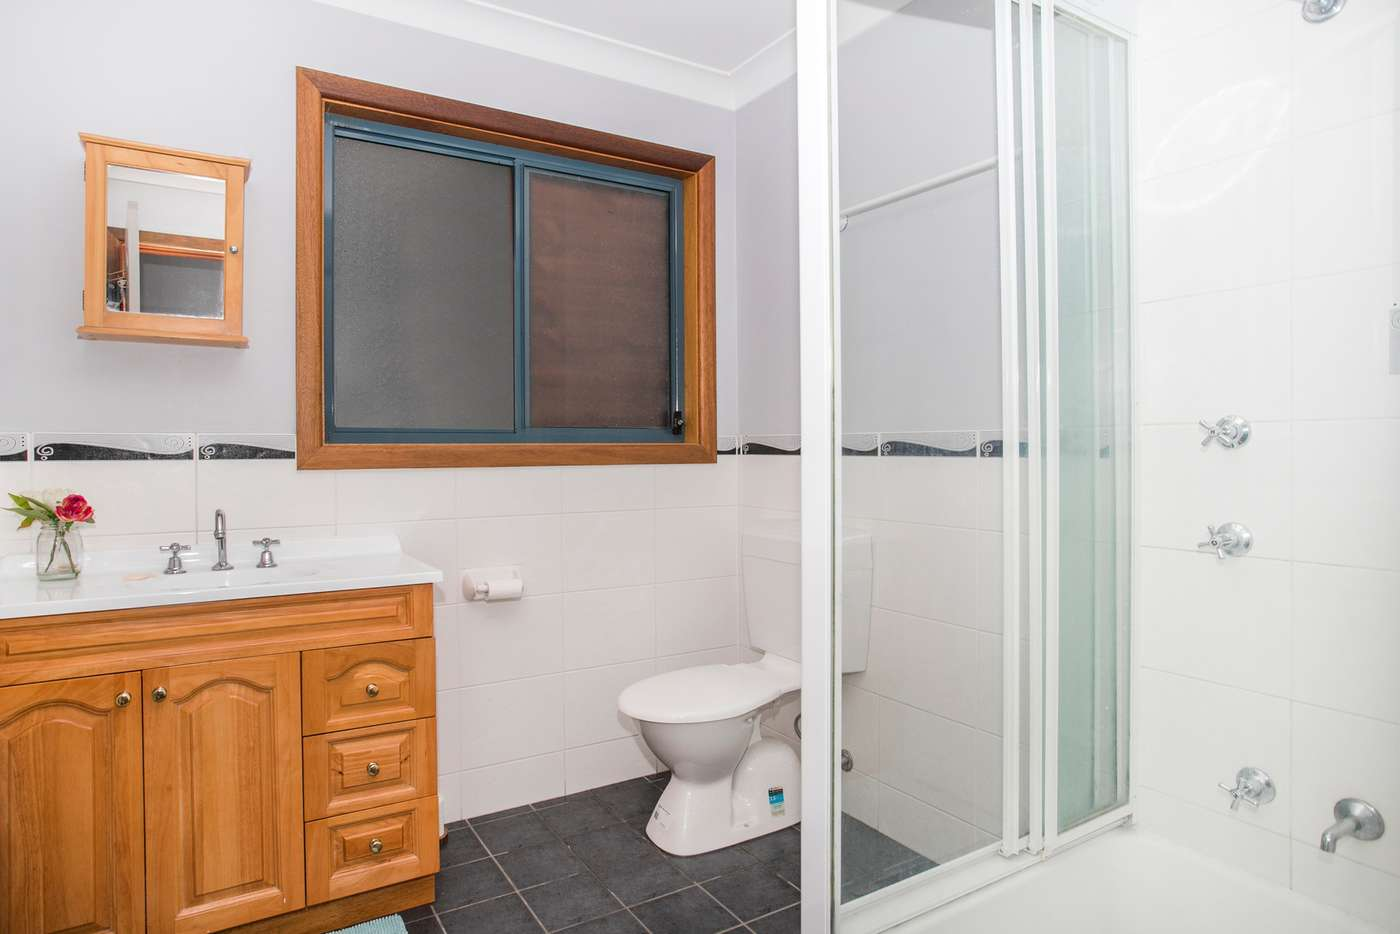 Fifth view of Homely house listing, 2 Stella Way, Lake Tabourie NSW 2539